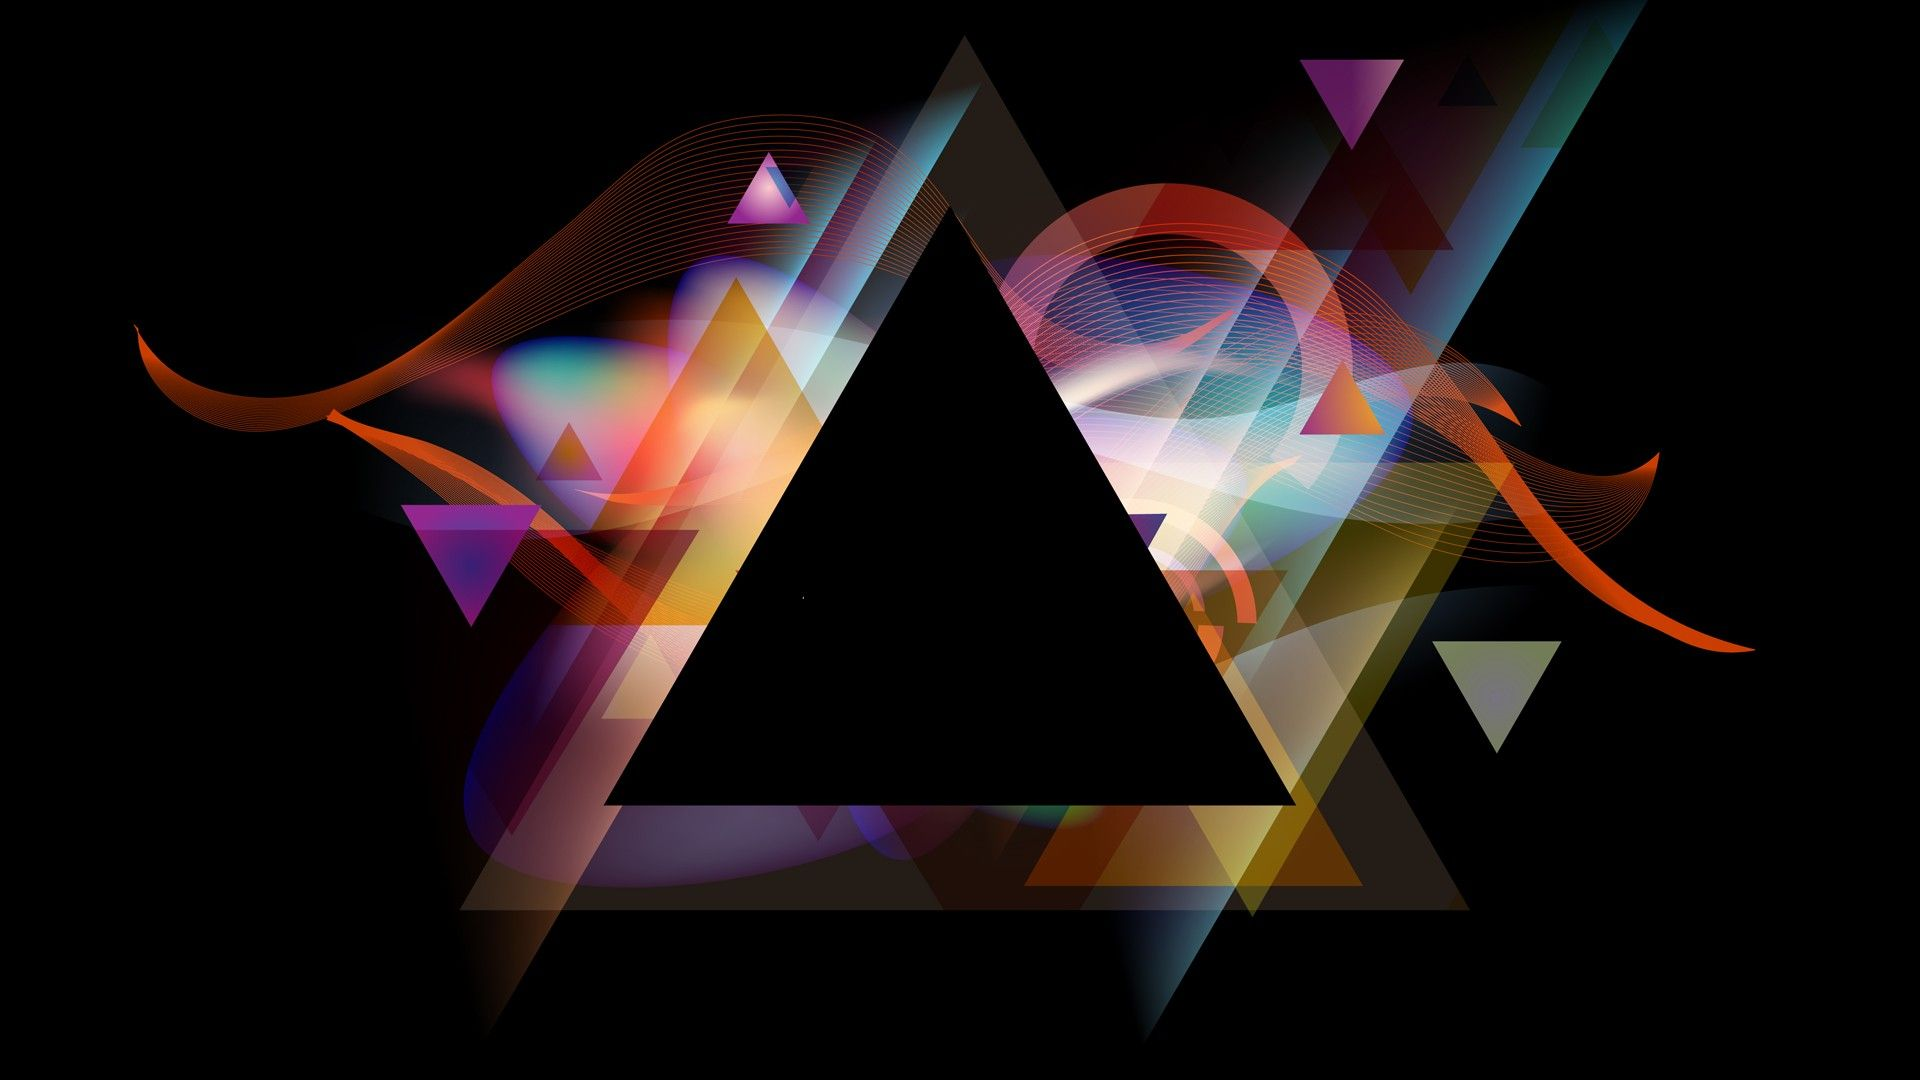 illuminati triangle wallpaper hd - photo #6